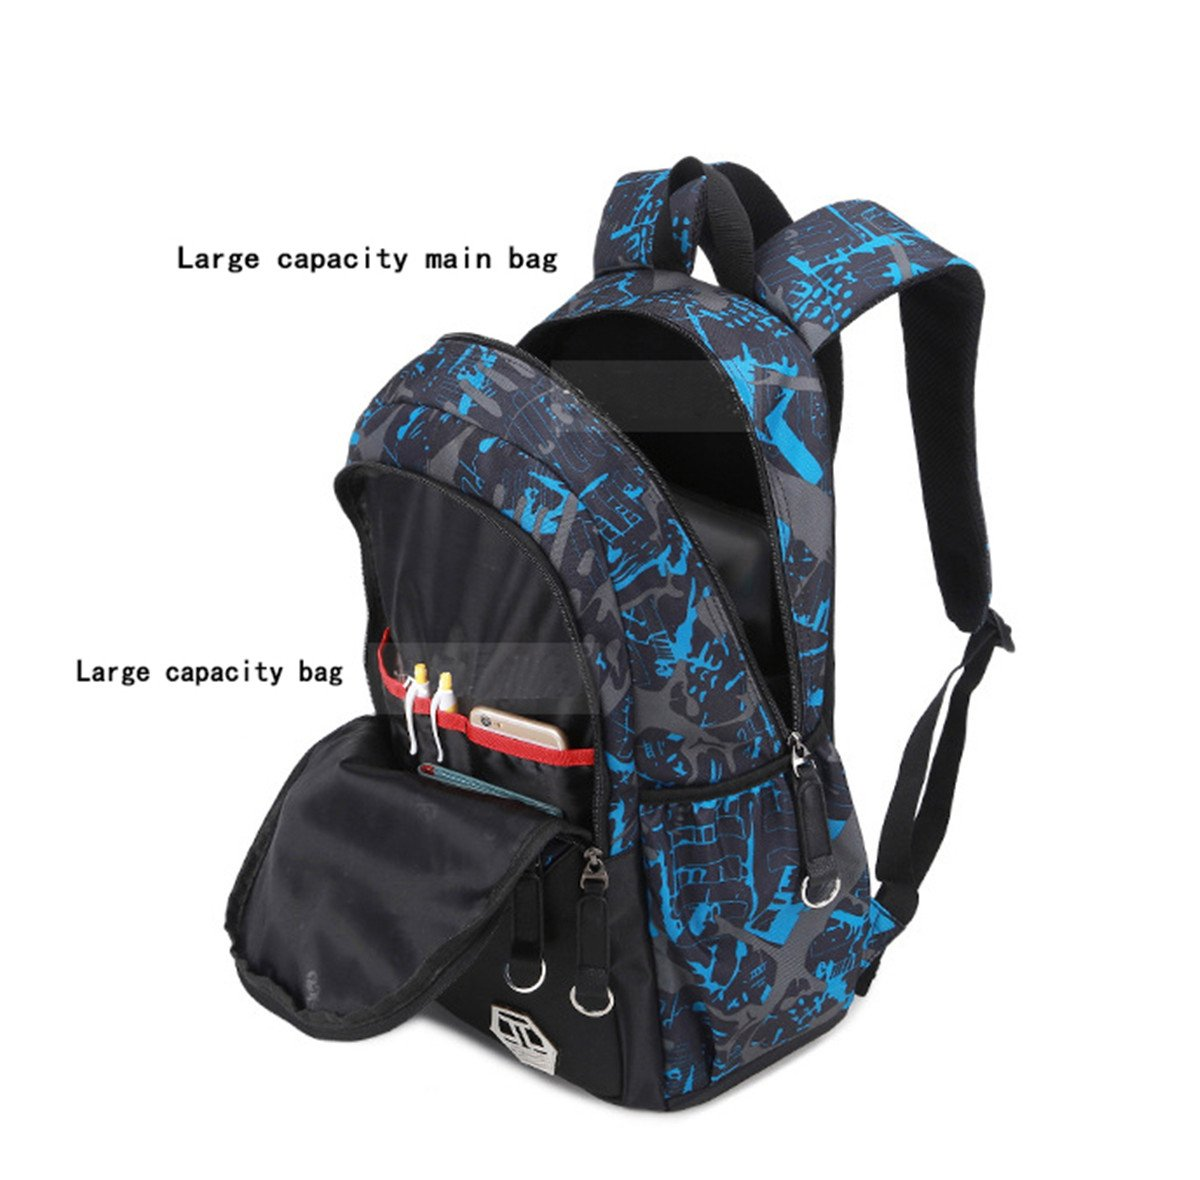 d177ed5fd85f Mioy teenager school bag Canvas printing Backpack durable student bag Large  Capacity 15 inch laptop daypack 3 pieces set (Blue)